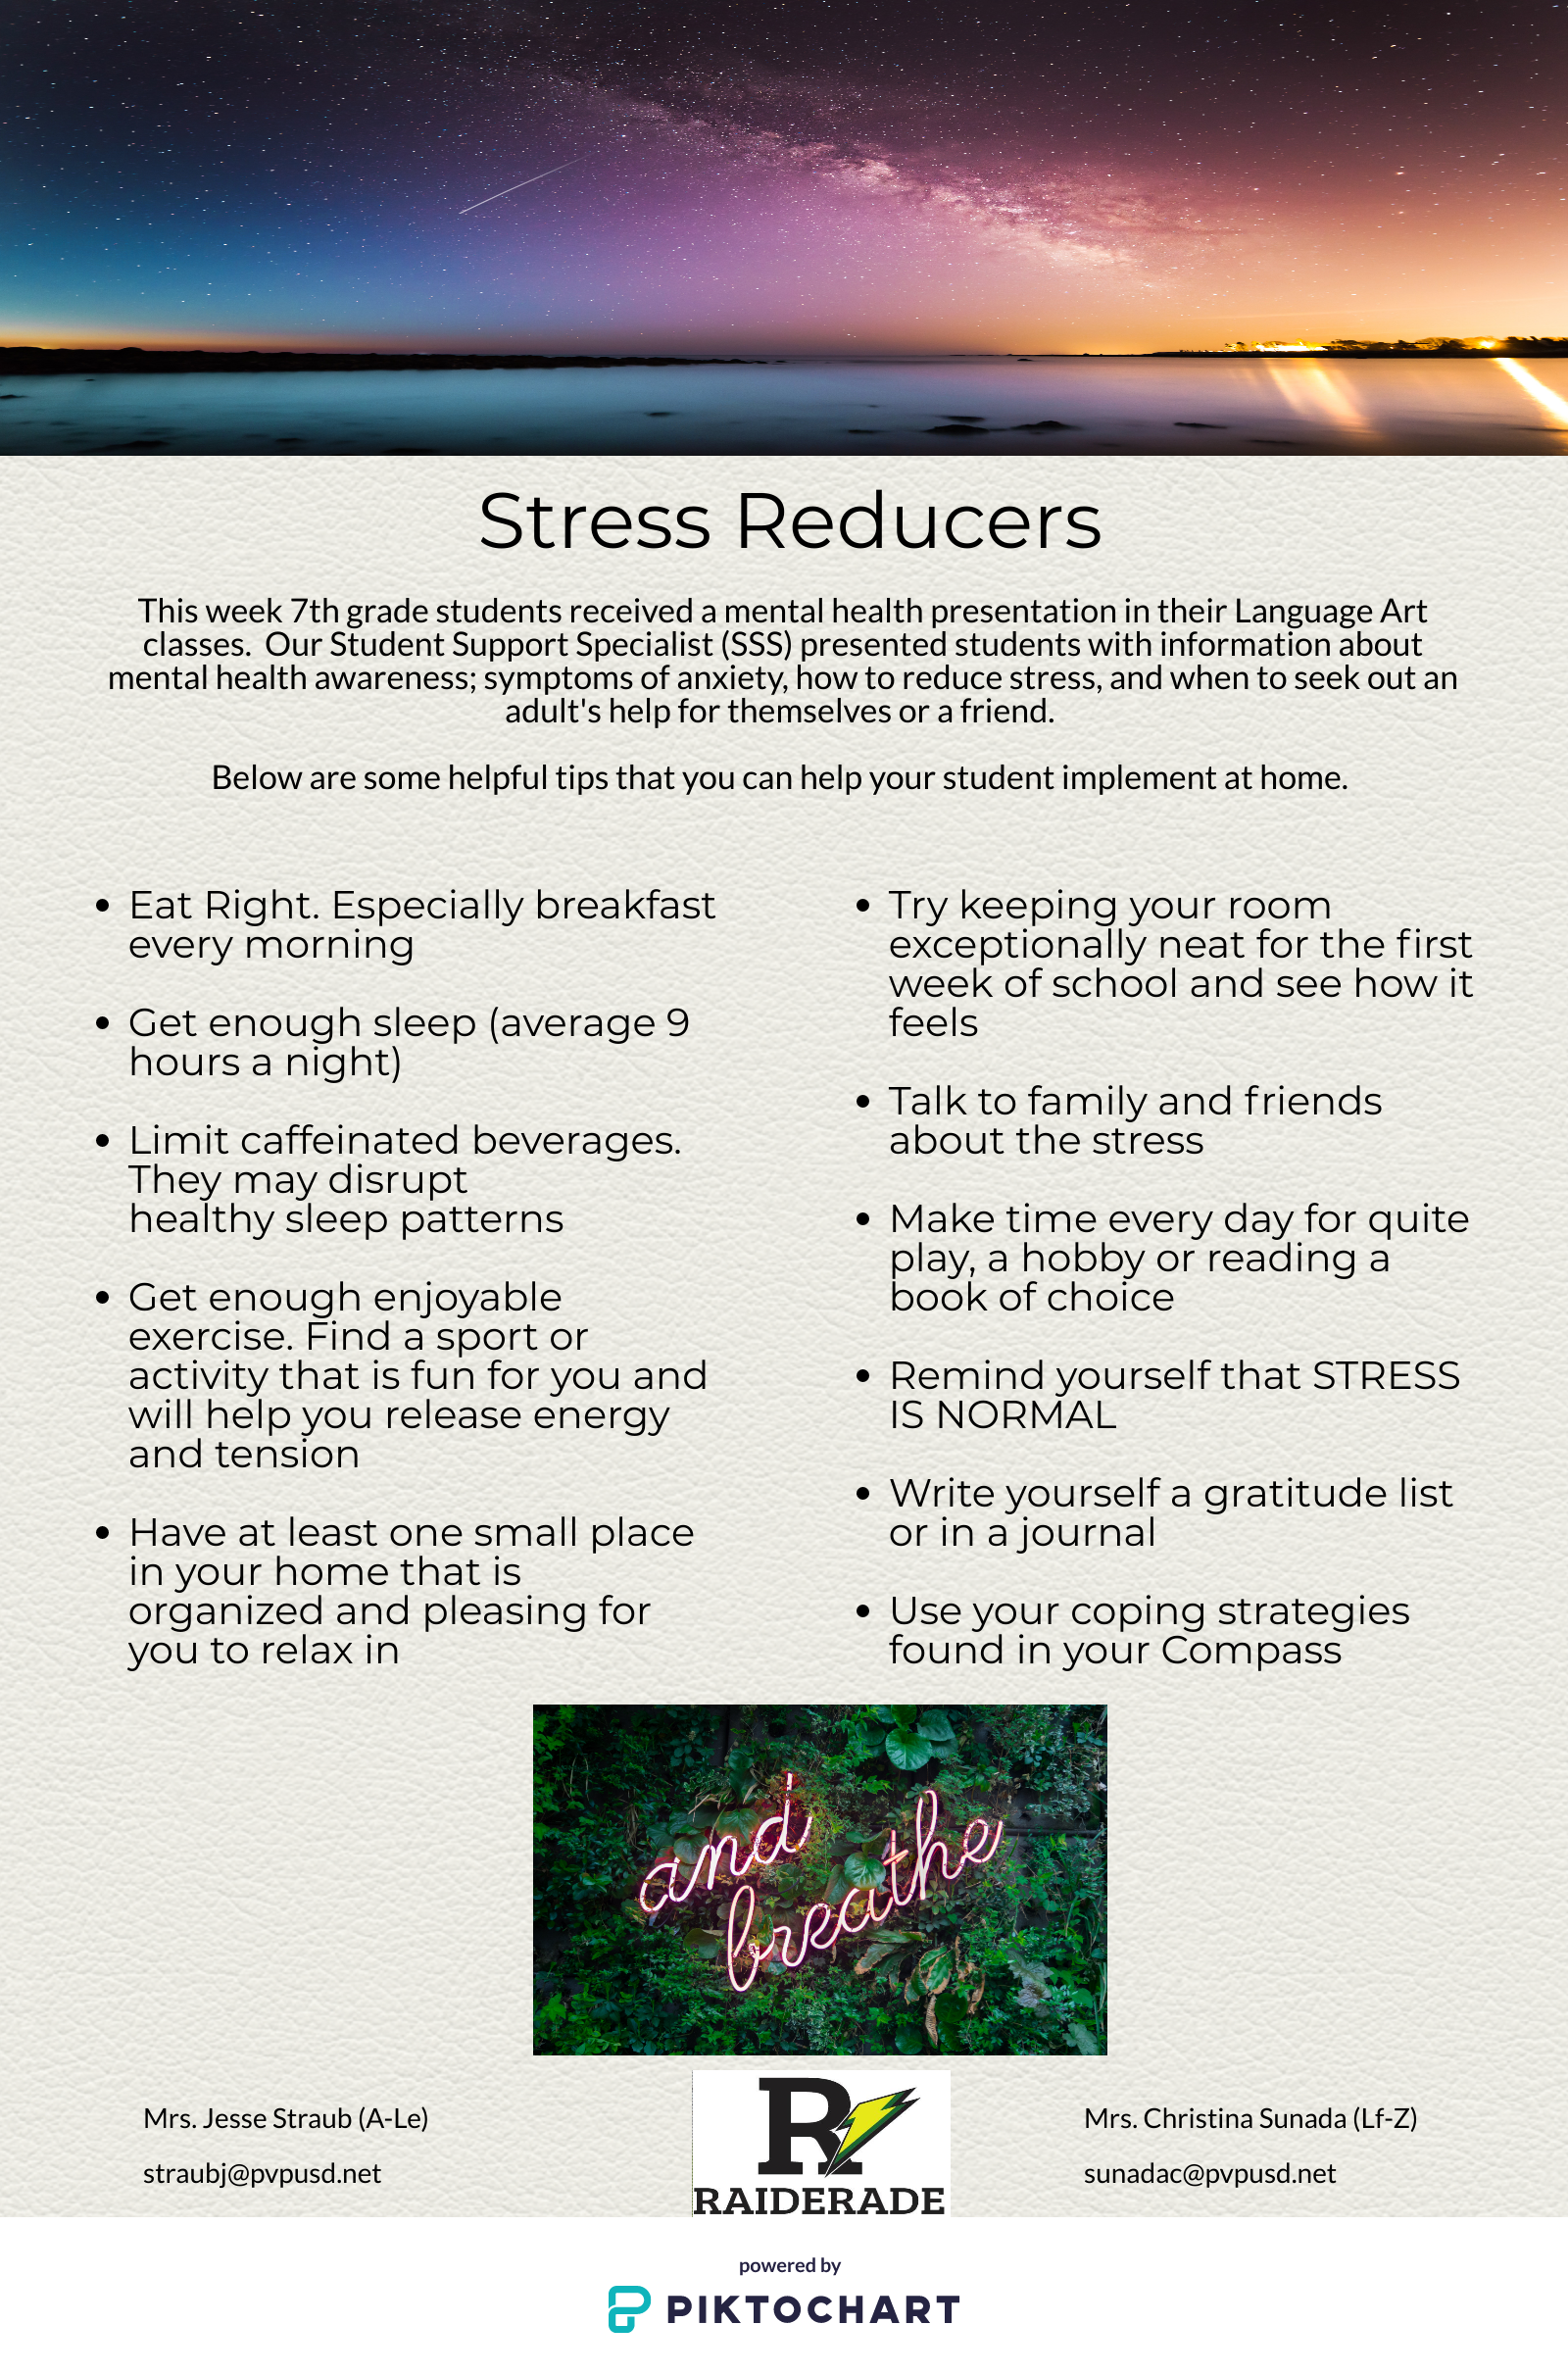 Stress Reducers Flyer